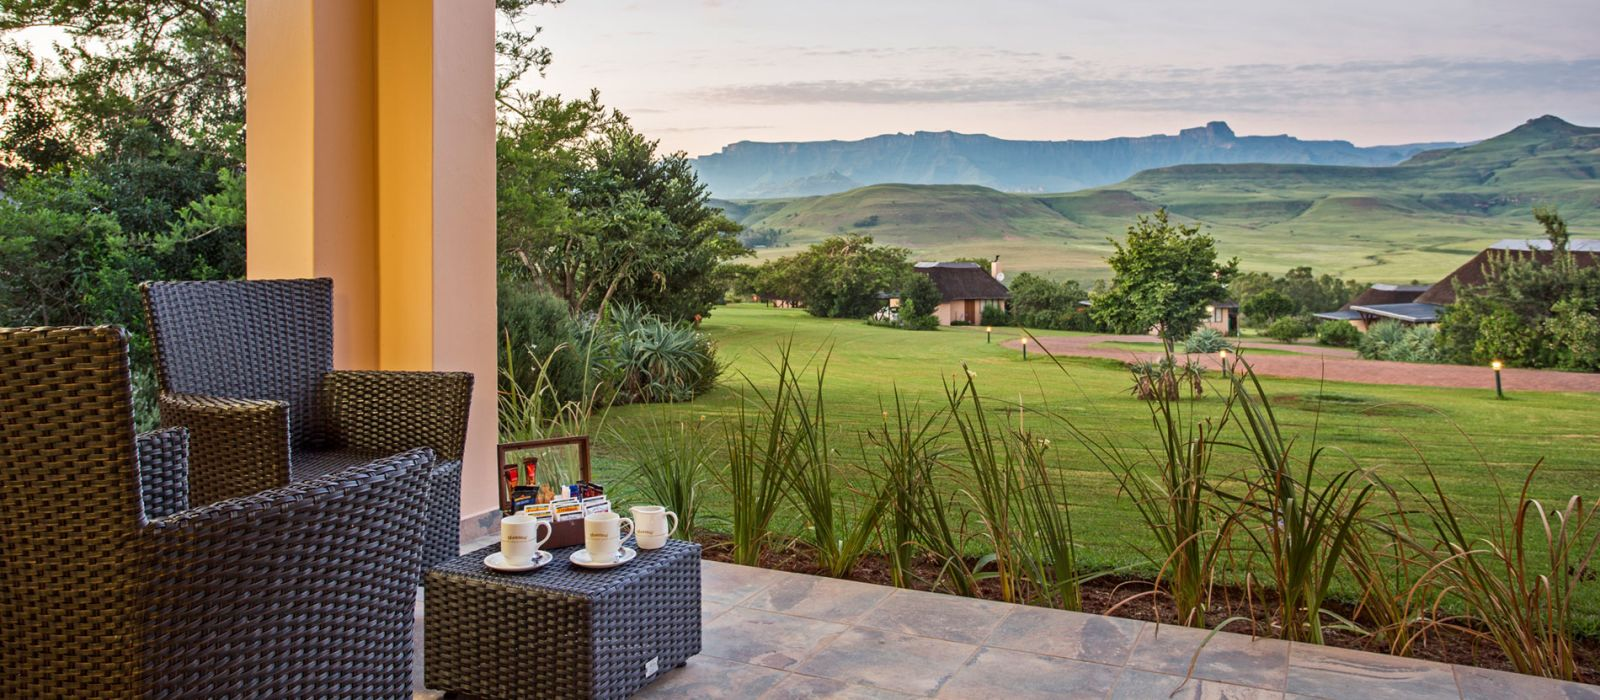 Hotel Montusi Mountain Lodge South Africa